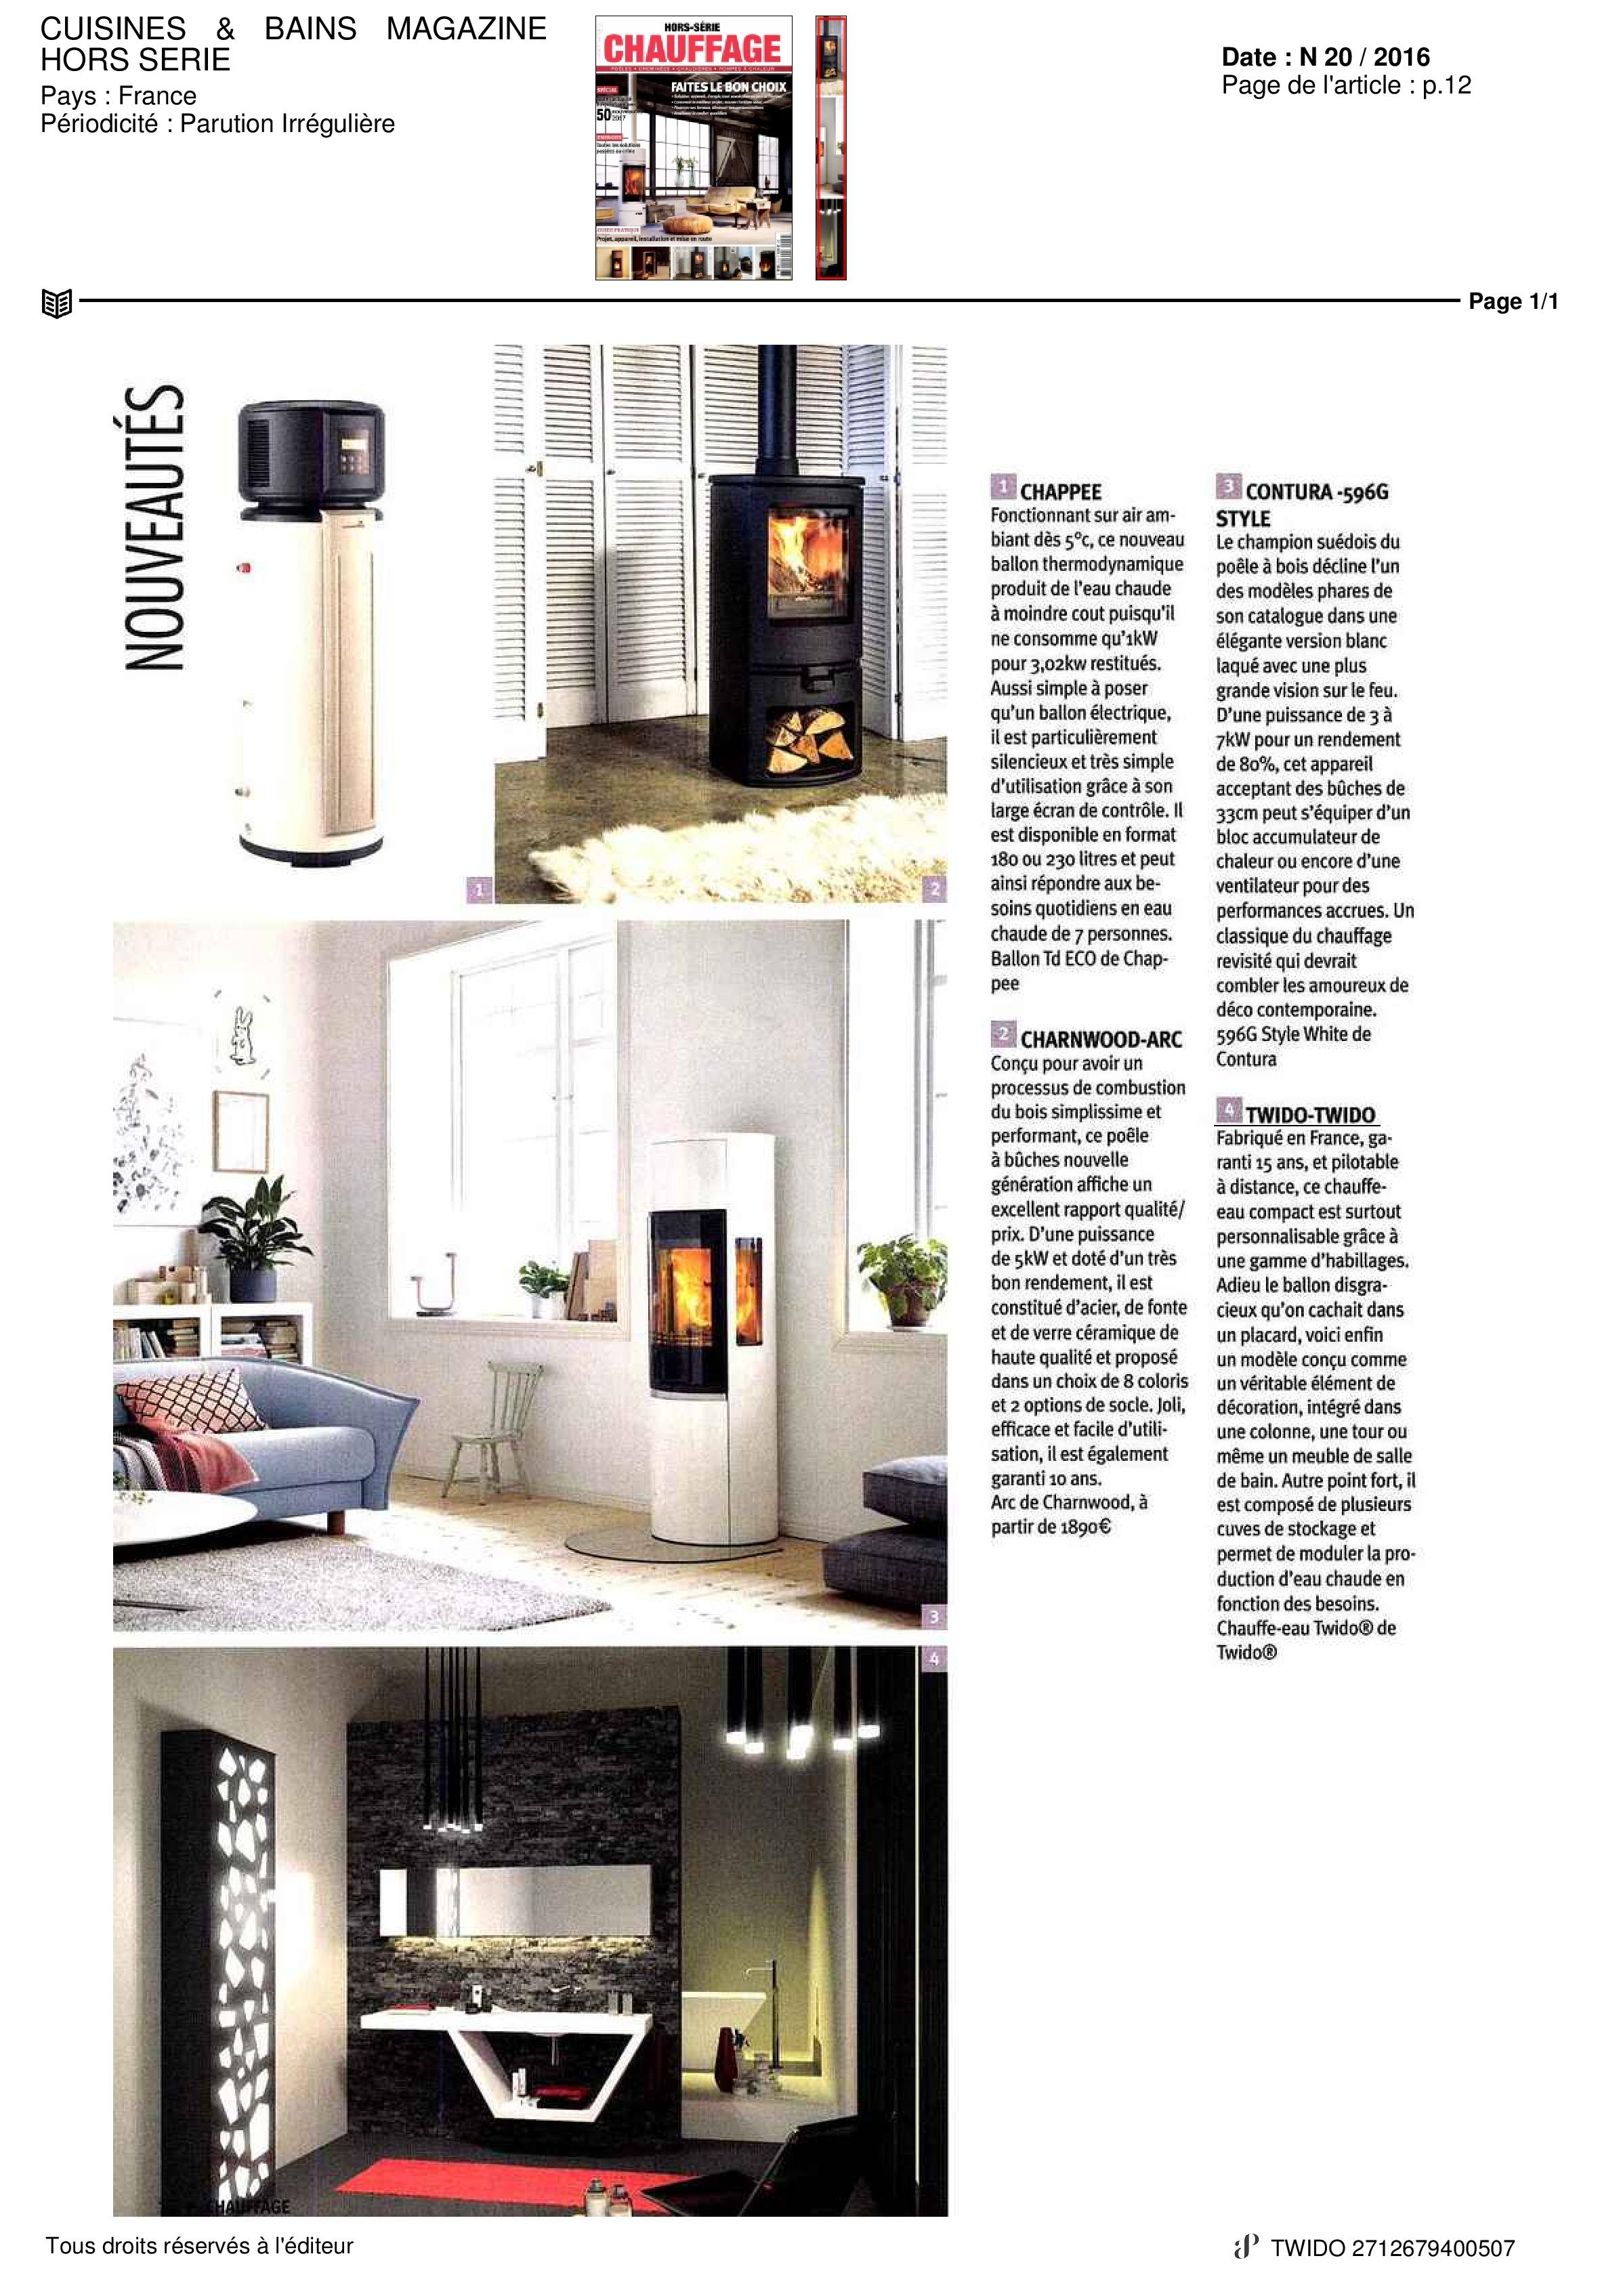 on parle de nous dans cuisines bains magazine twido. Black Bedroom Furniture Sets. Home Design Ideas